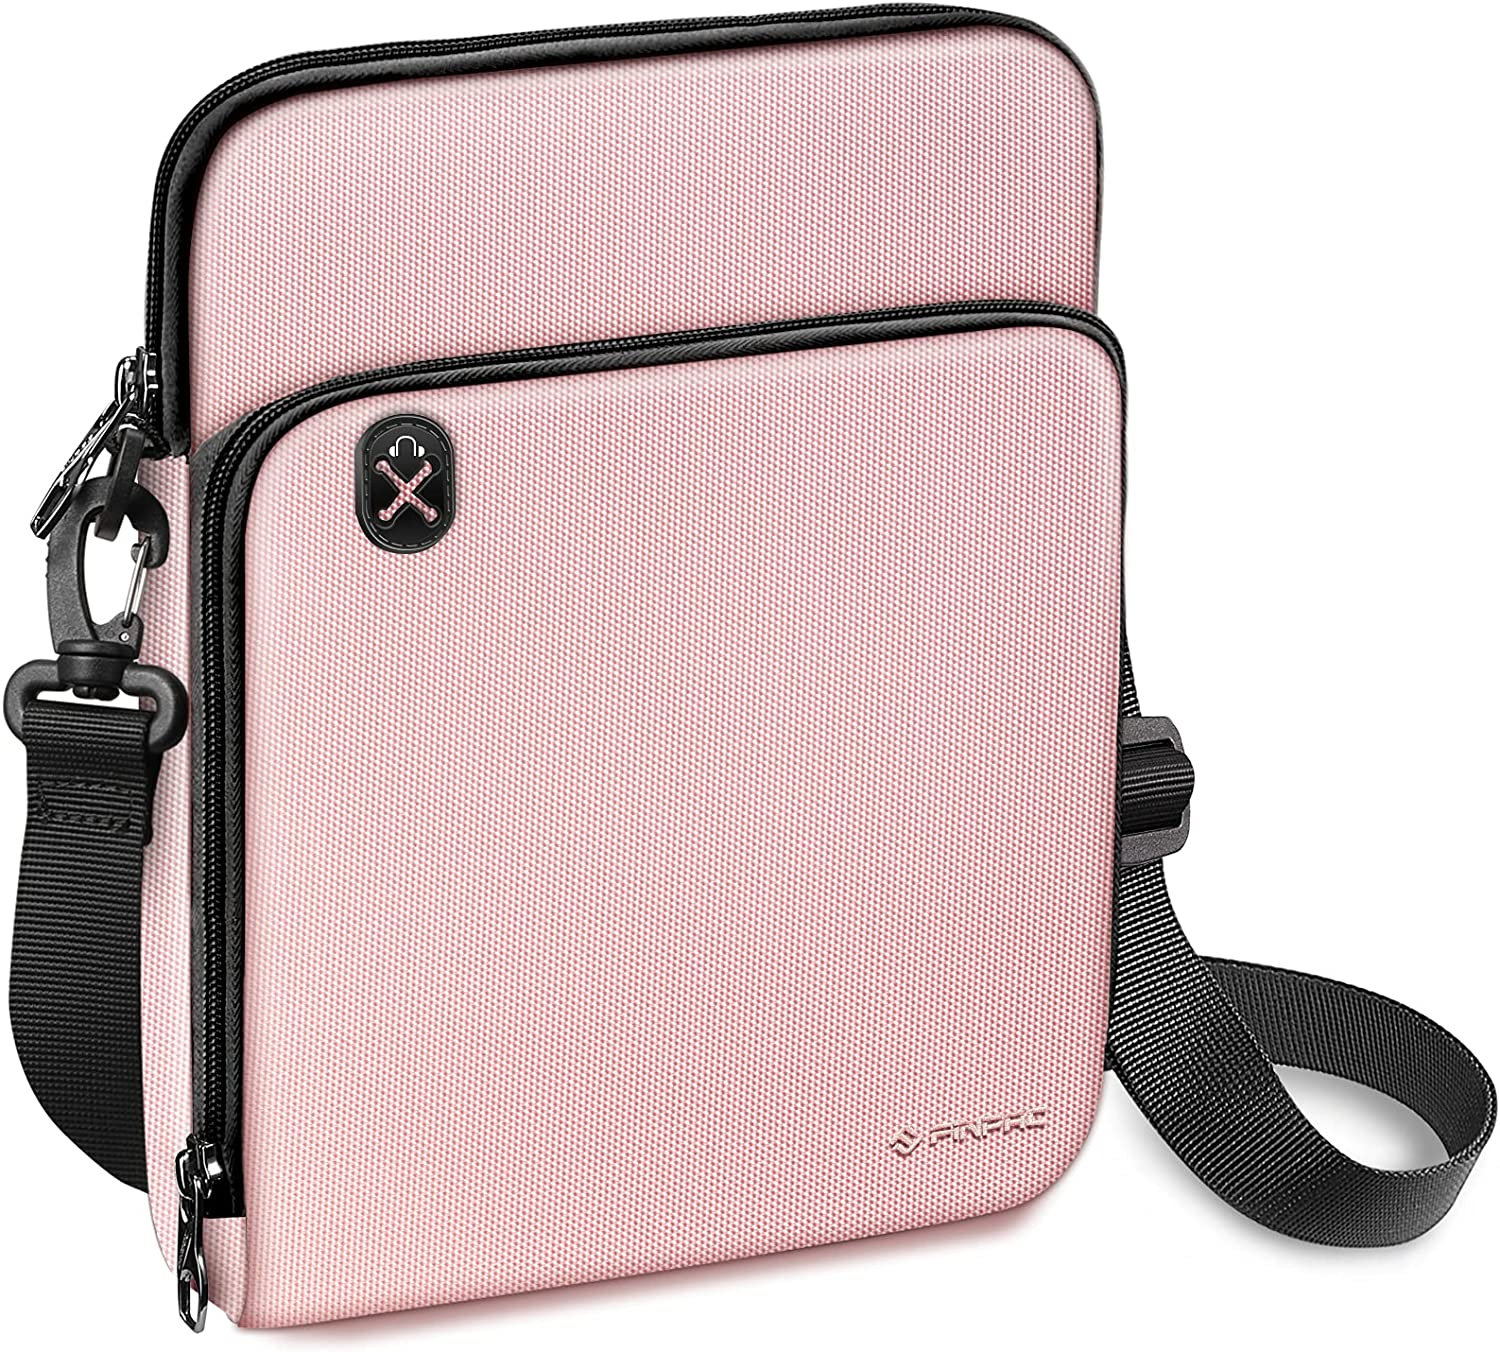 FINPAC 11 Inch Tablet Sleeve Shoulder Rapid rise Briefcase Case Fixed price for sale Bag